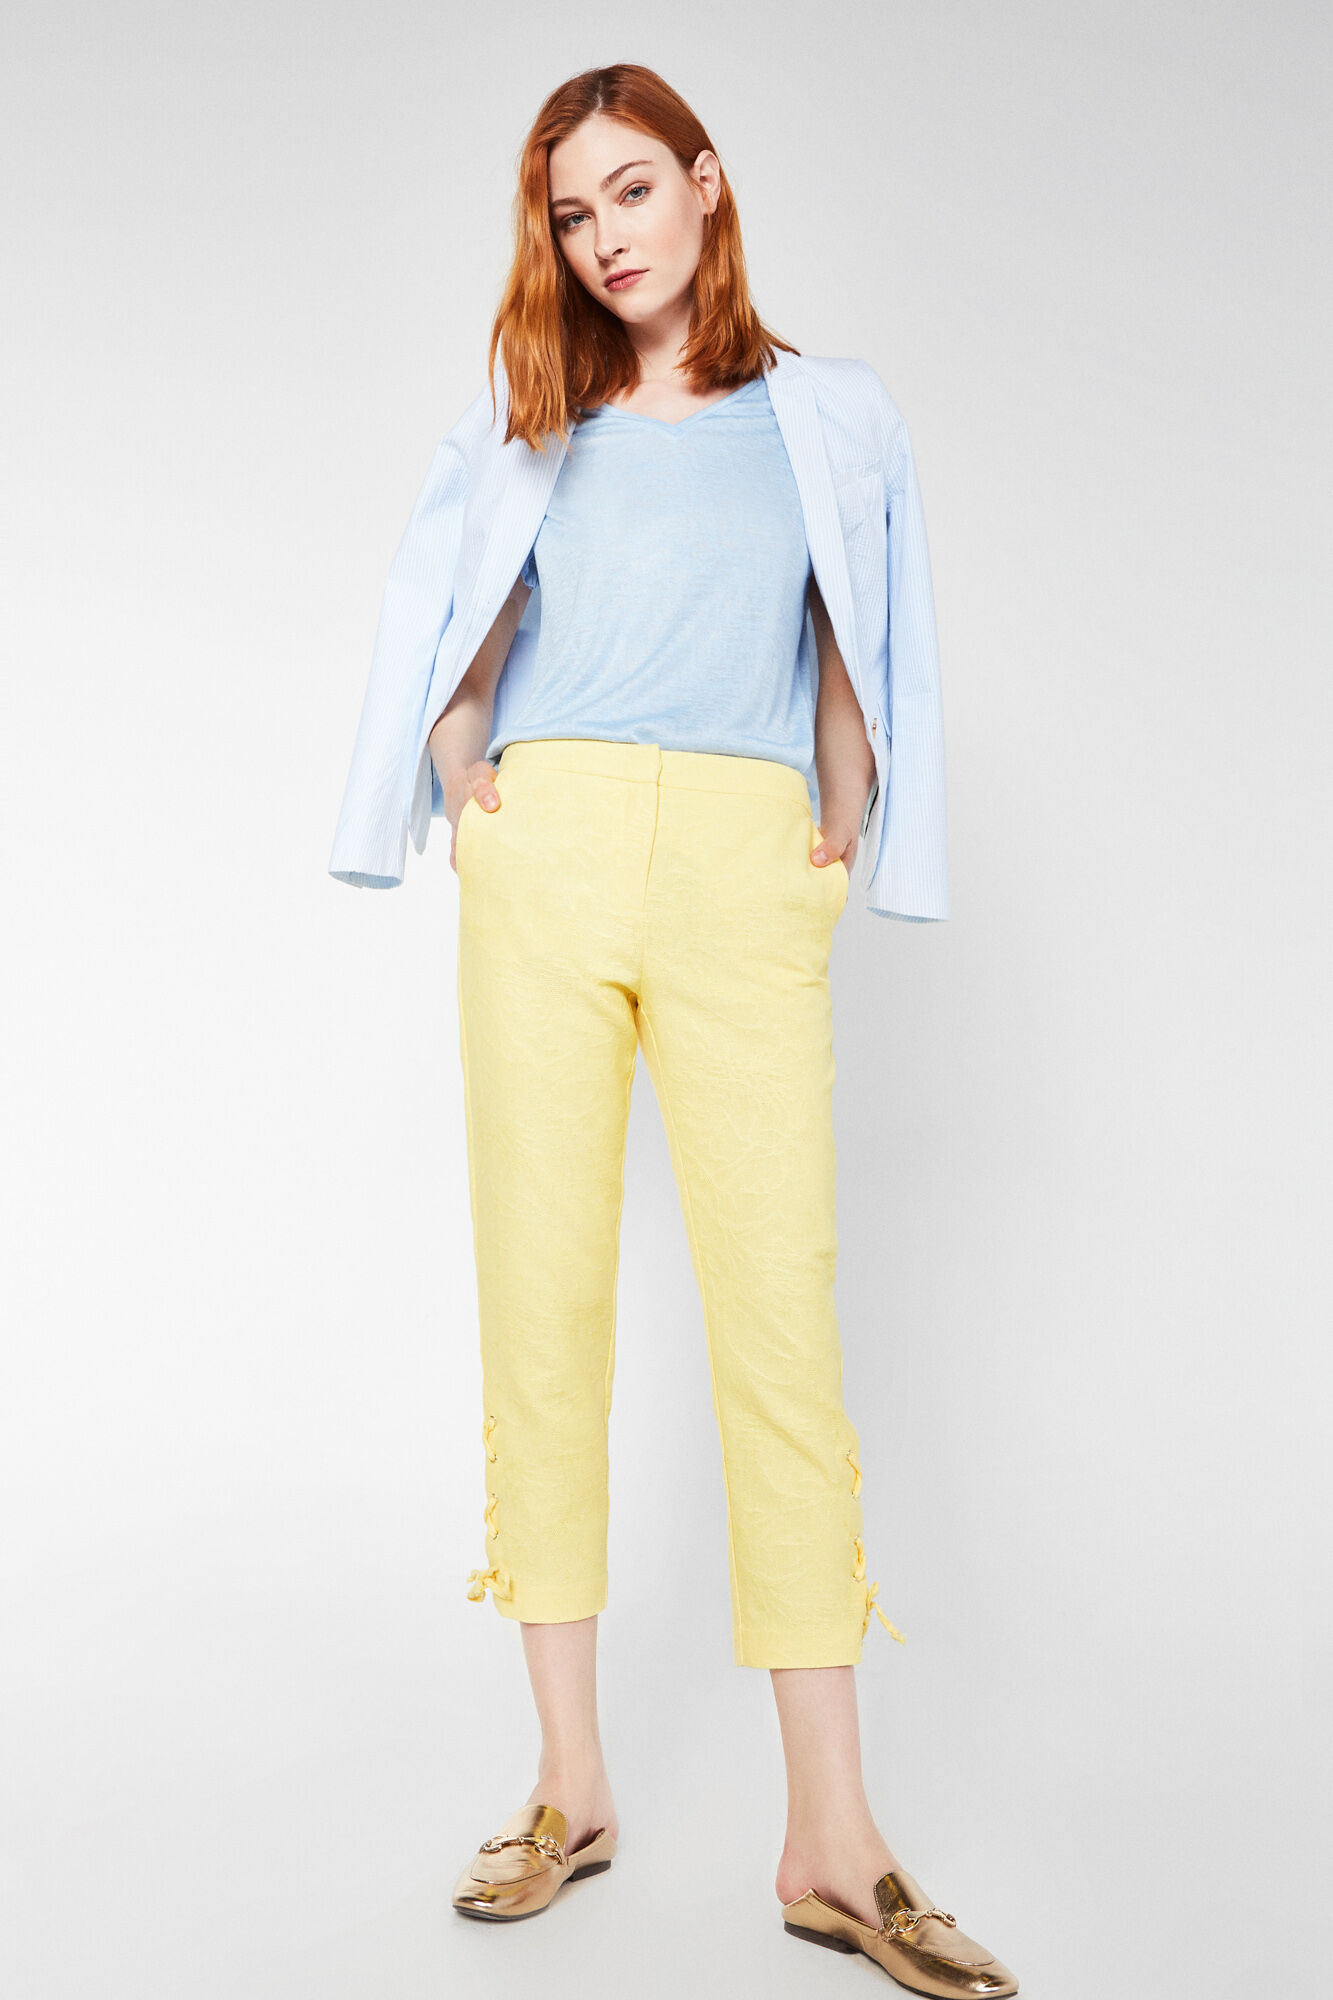 Outlet Pantalones Outlet Fifty De Fifty Mujer Outlet De Pantalones Mujer Pantalones De Mujer FUrFq